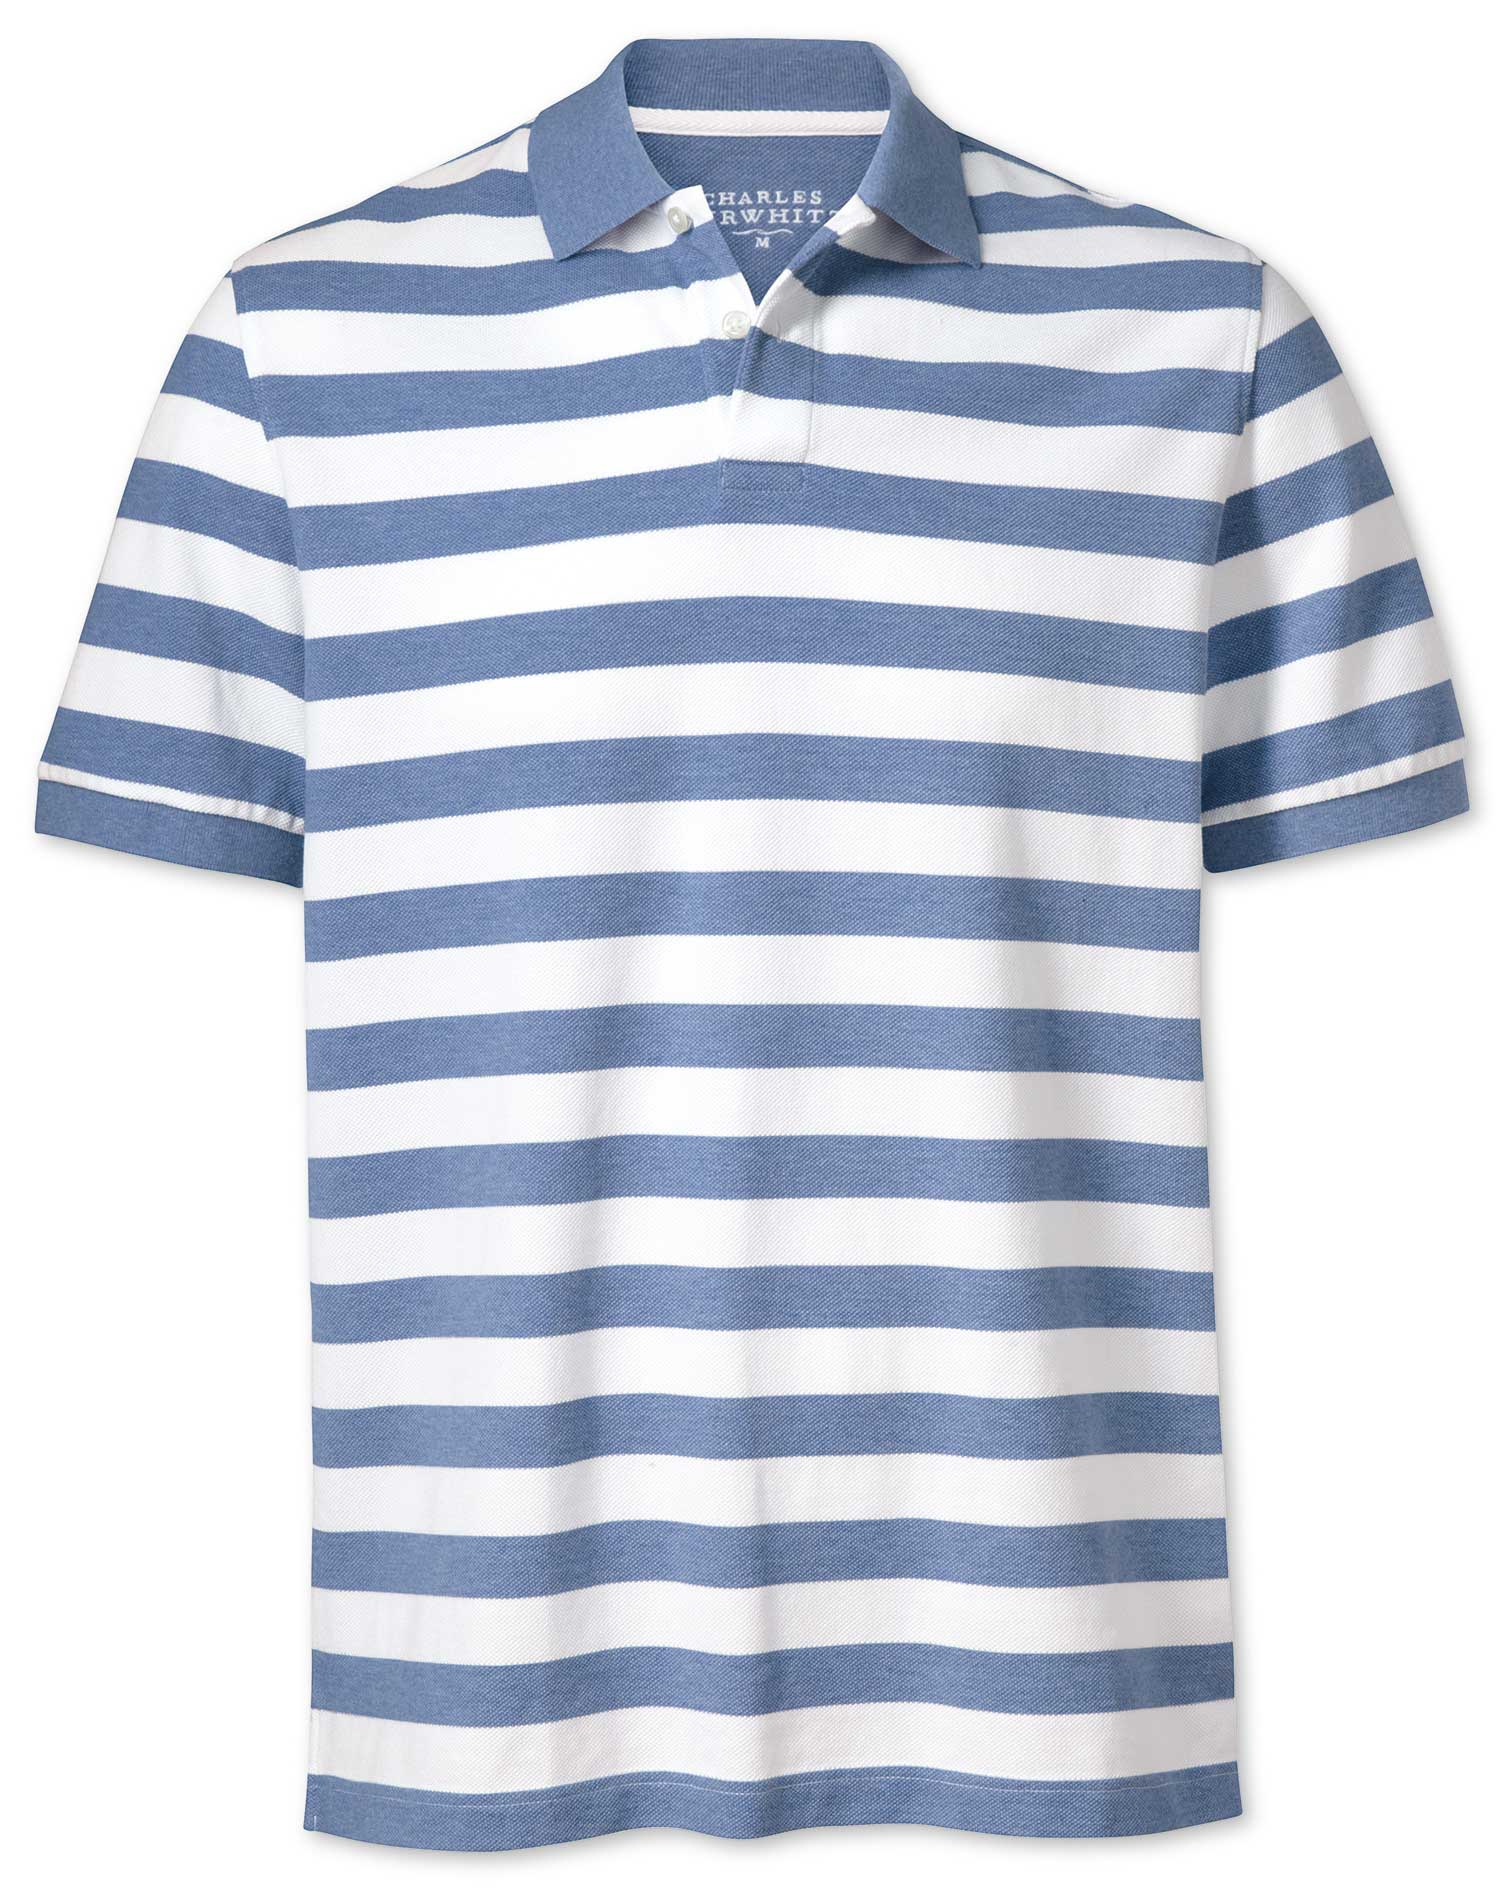 Sky Blue and White Stripe Pique Cotton Polo Size XS by Charles Tyrwhitt